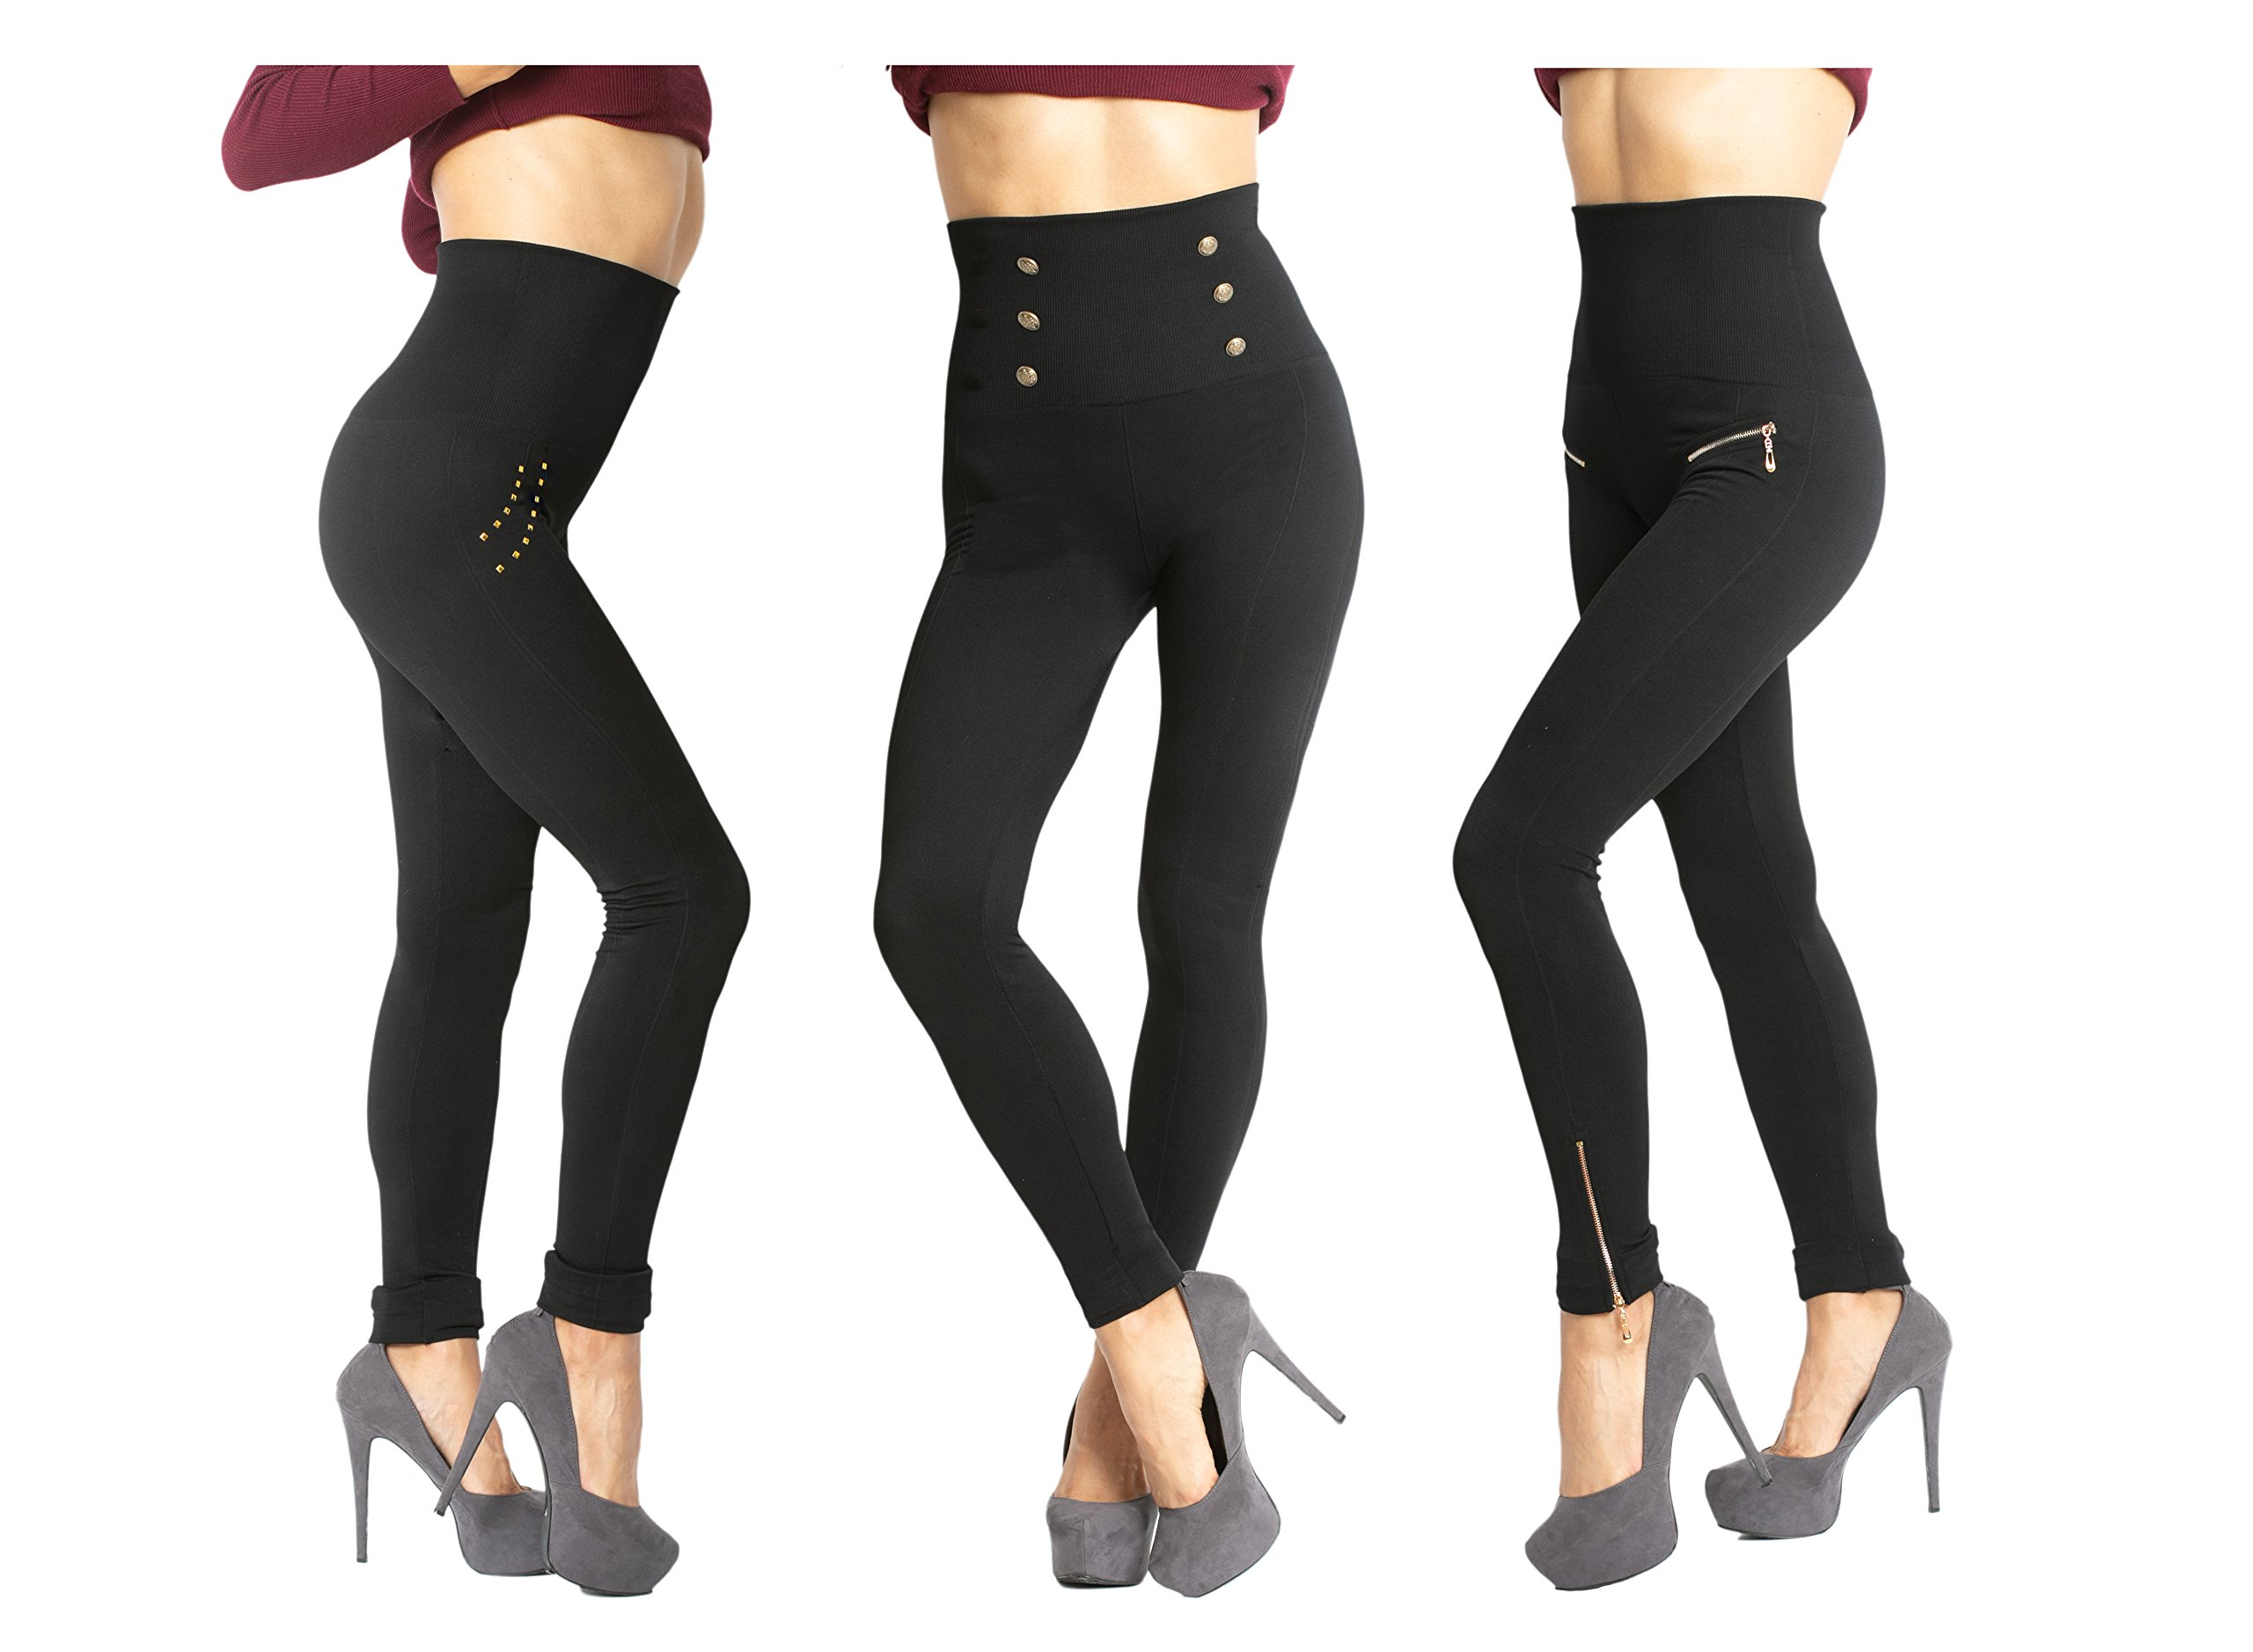 Womens Tummy Control High Waisted Elegant Evening Leggings - 3 Pair Pack Box Set,Black,Plus size 12-24